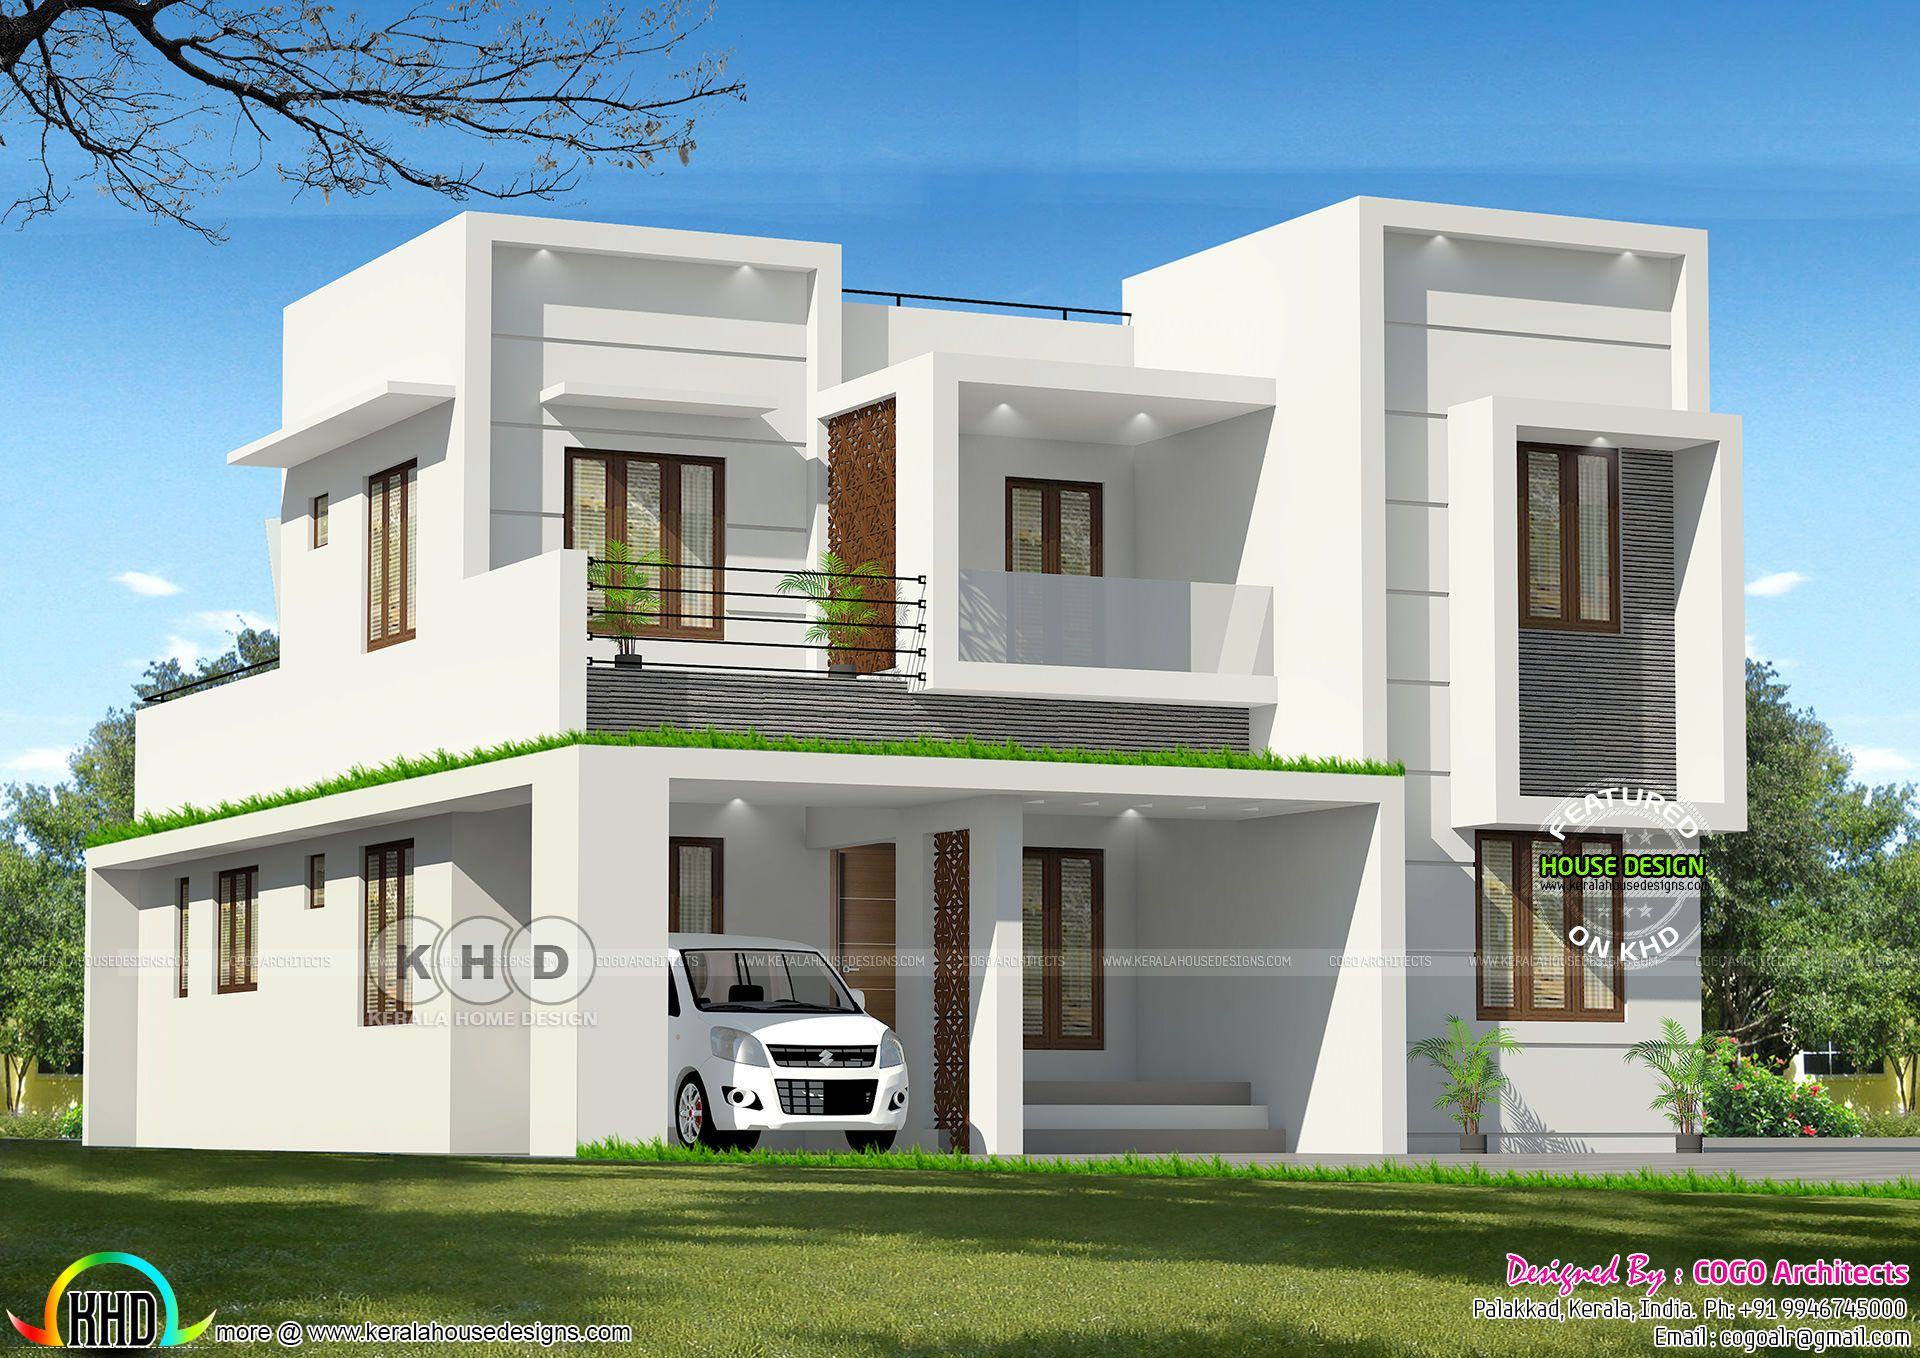 Under 50 Lakhs Budget house design in 2020 | House design ...